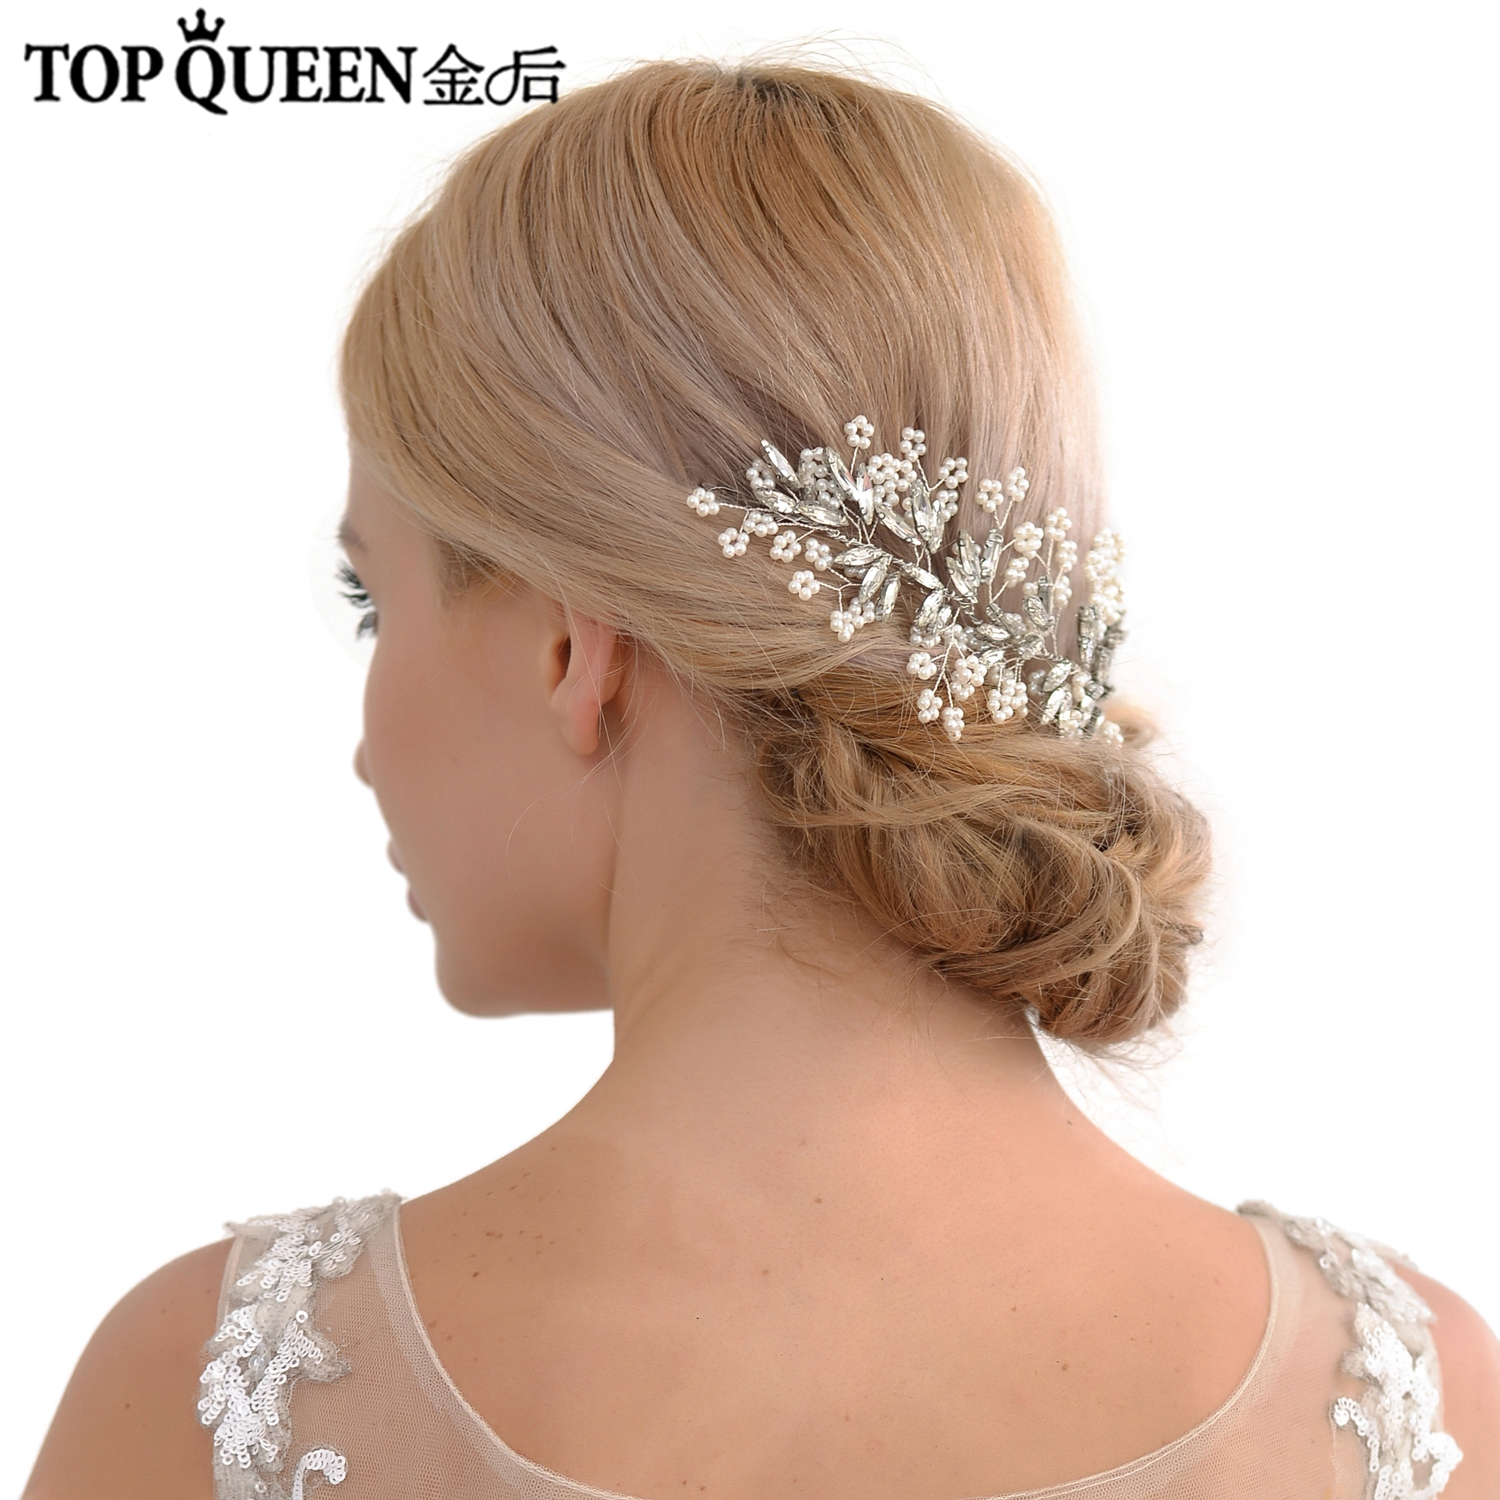 TOPQUEEN HP53 Bride Hair Jewelry Wedding Accessories Headpieces With Pearls And Crystal Silver Color Fast Shipping In Stock